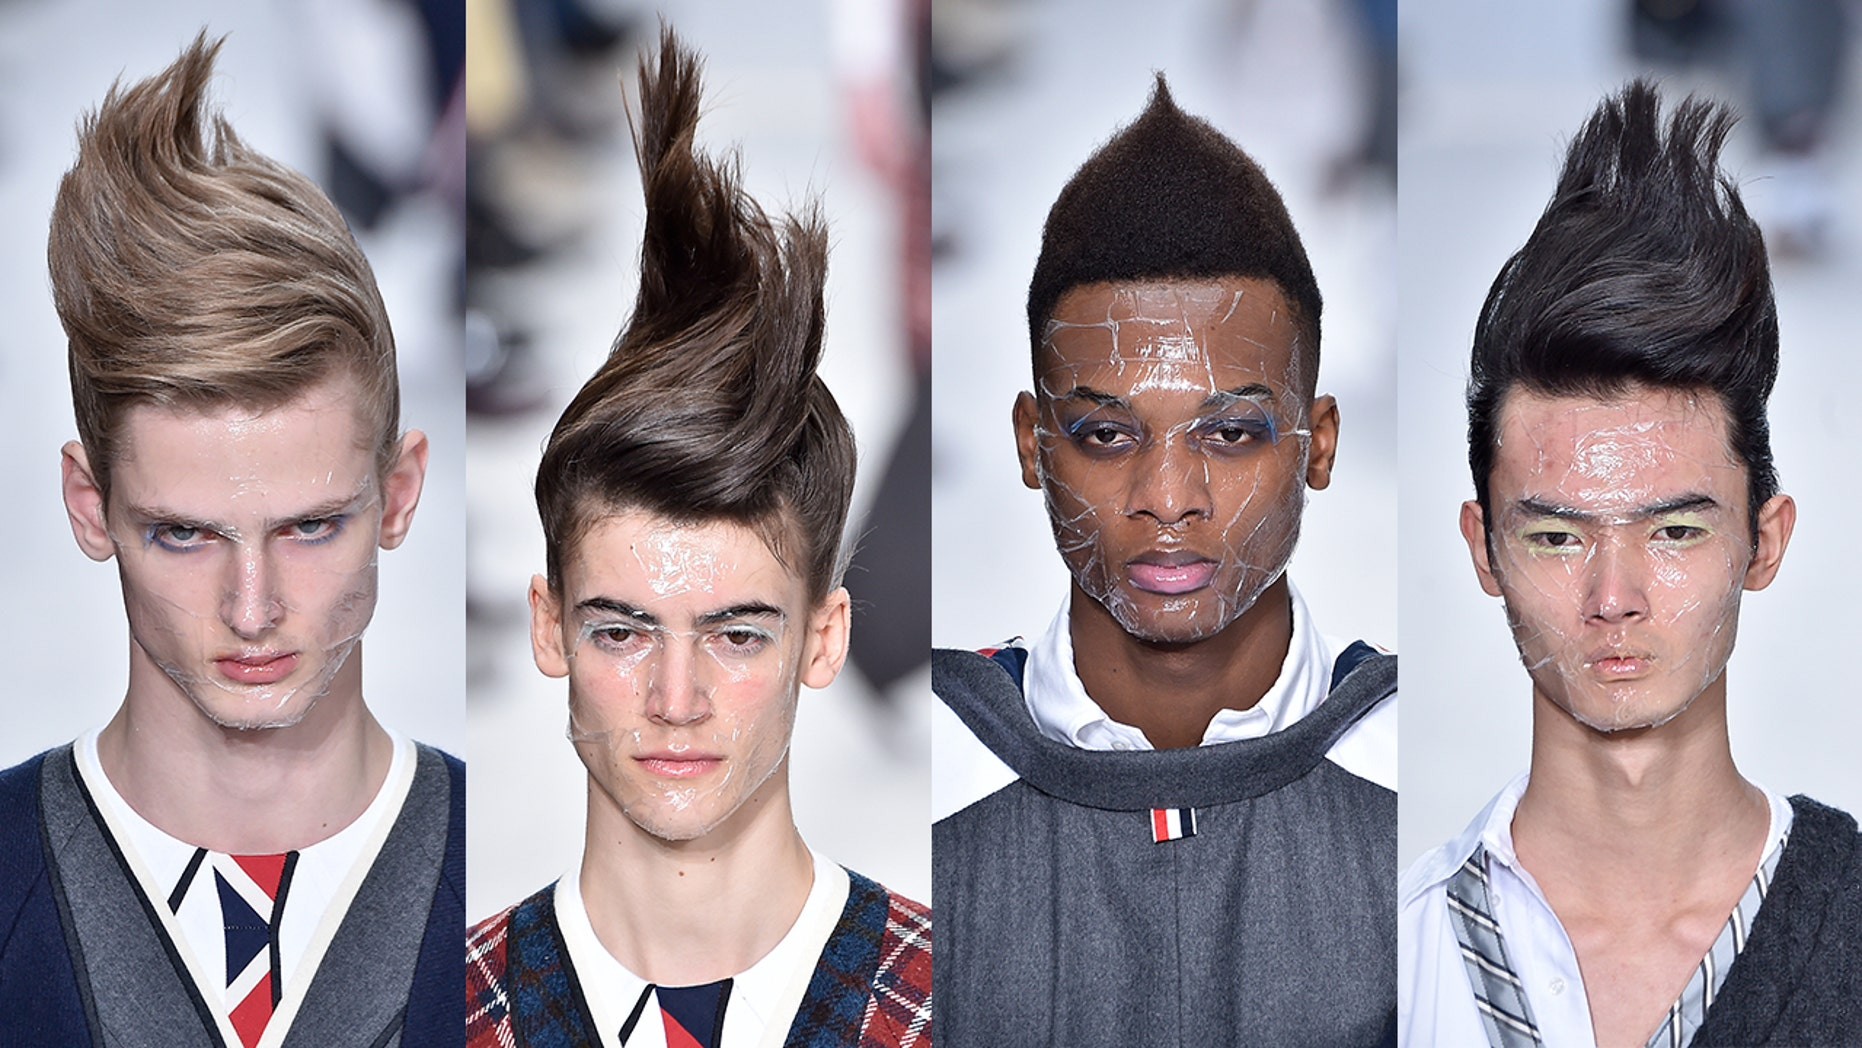 Hair Style 2019 Men: 'Fashion Troll' Is The New Haircut Taking Over The Runway